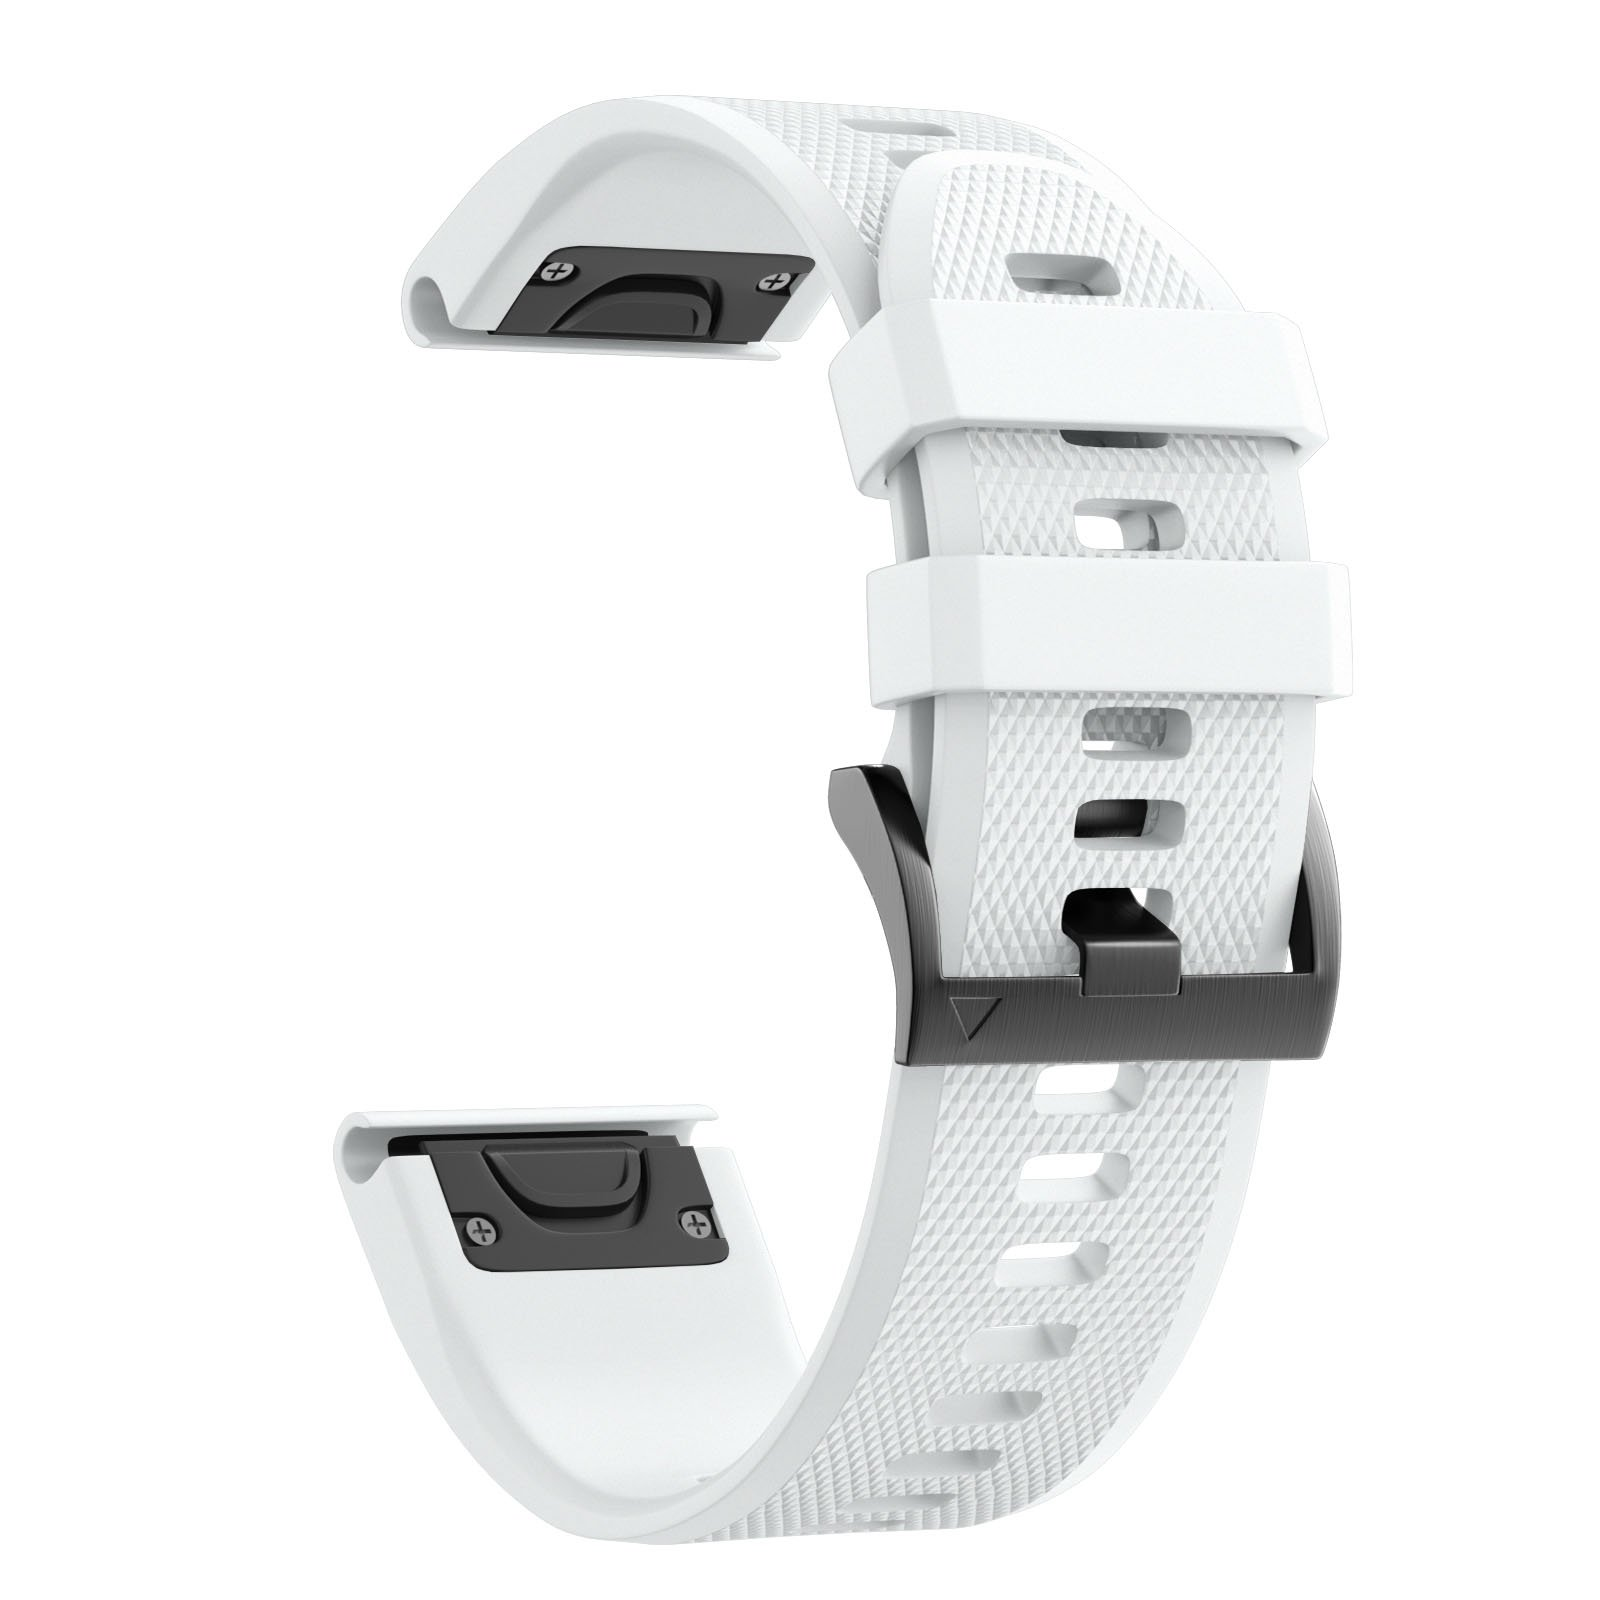 ANCOOL Compatible with Fenix 5 Band Easy Fit 22mm Width Soft Silicone Watch Strap Replacement for Fenix 5/Fenix 5 Plus/Forerunner 935/Approach S60/Quatix 5- White by ANCOOL